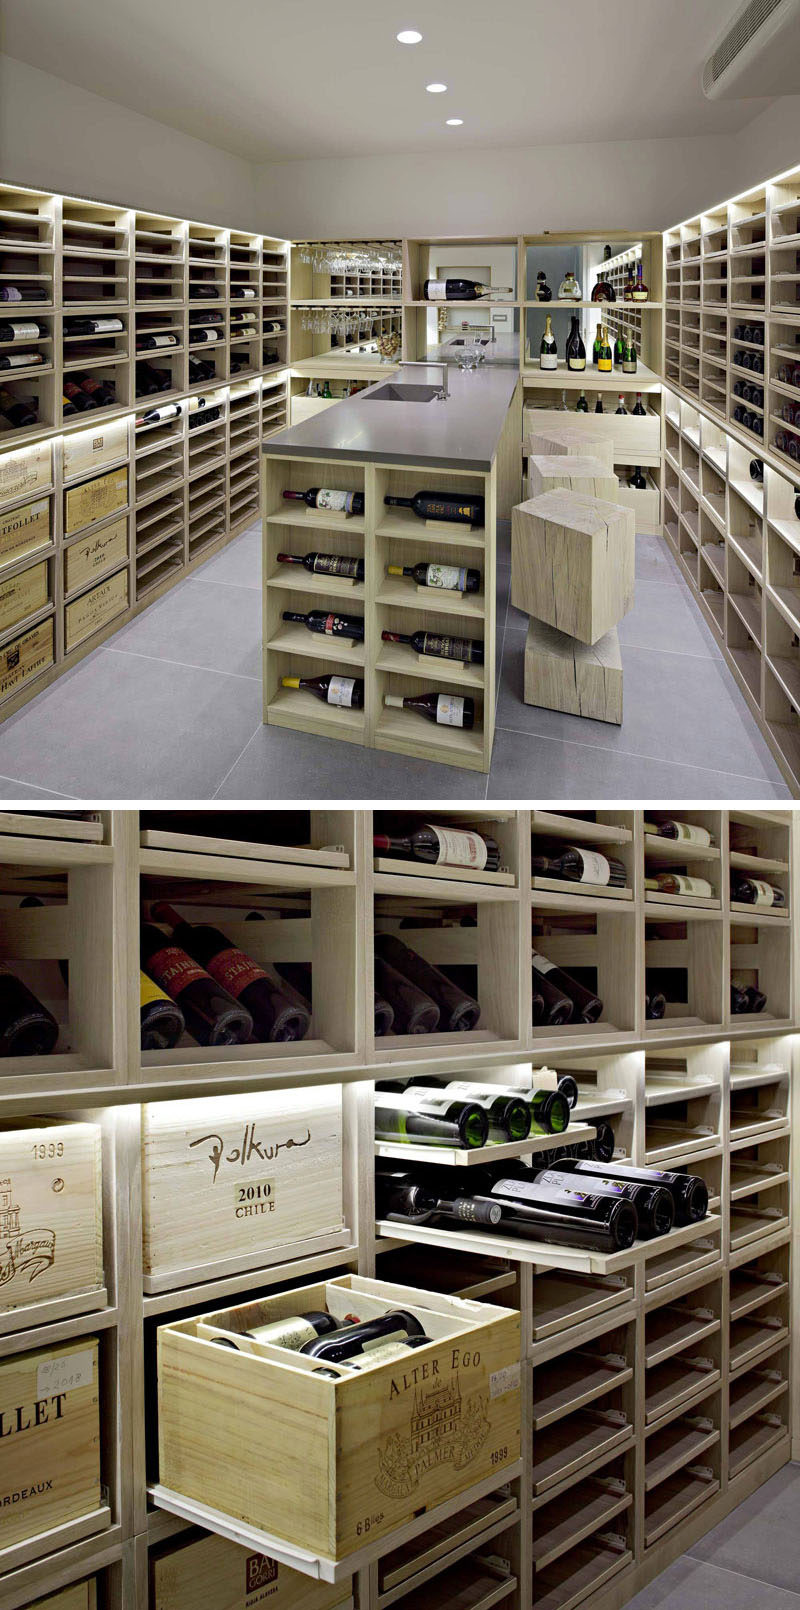 In the lower floor of this modern house, there's a wine cellar with custom built shelving with pull-out displays to show off the wine. #WineCellar #WineStorage #InteriorDesign